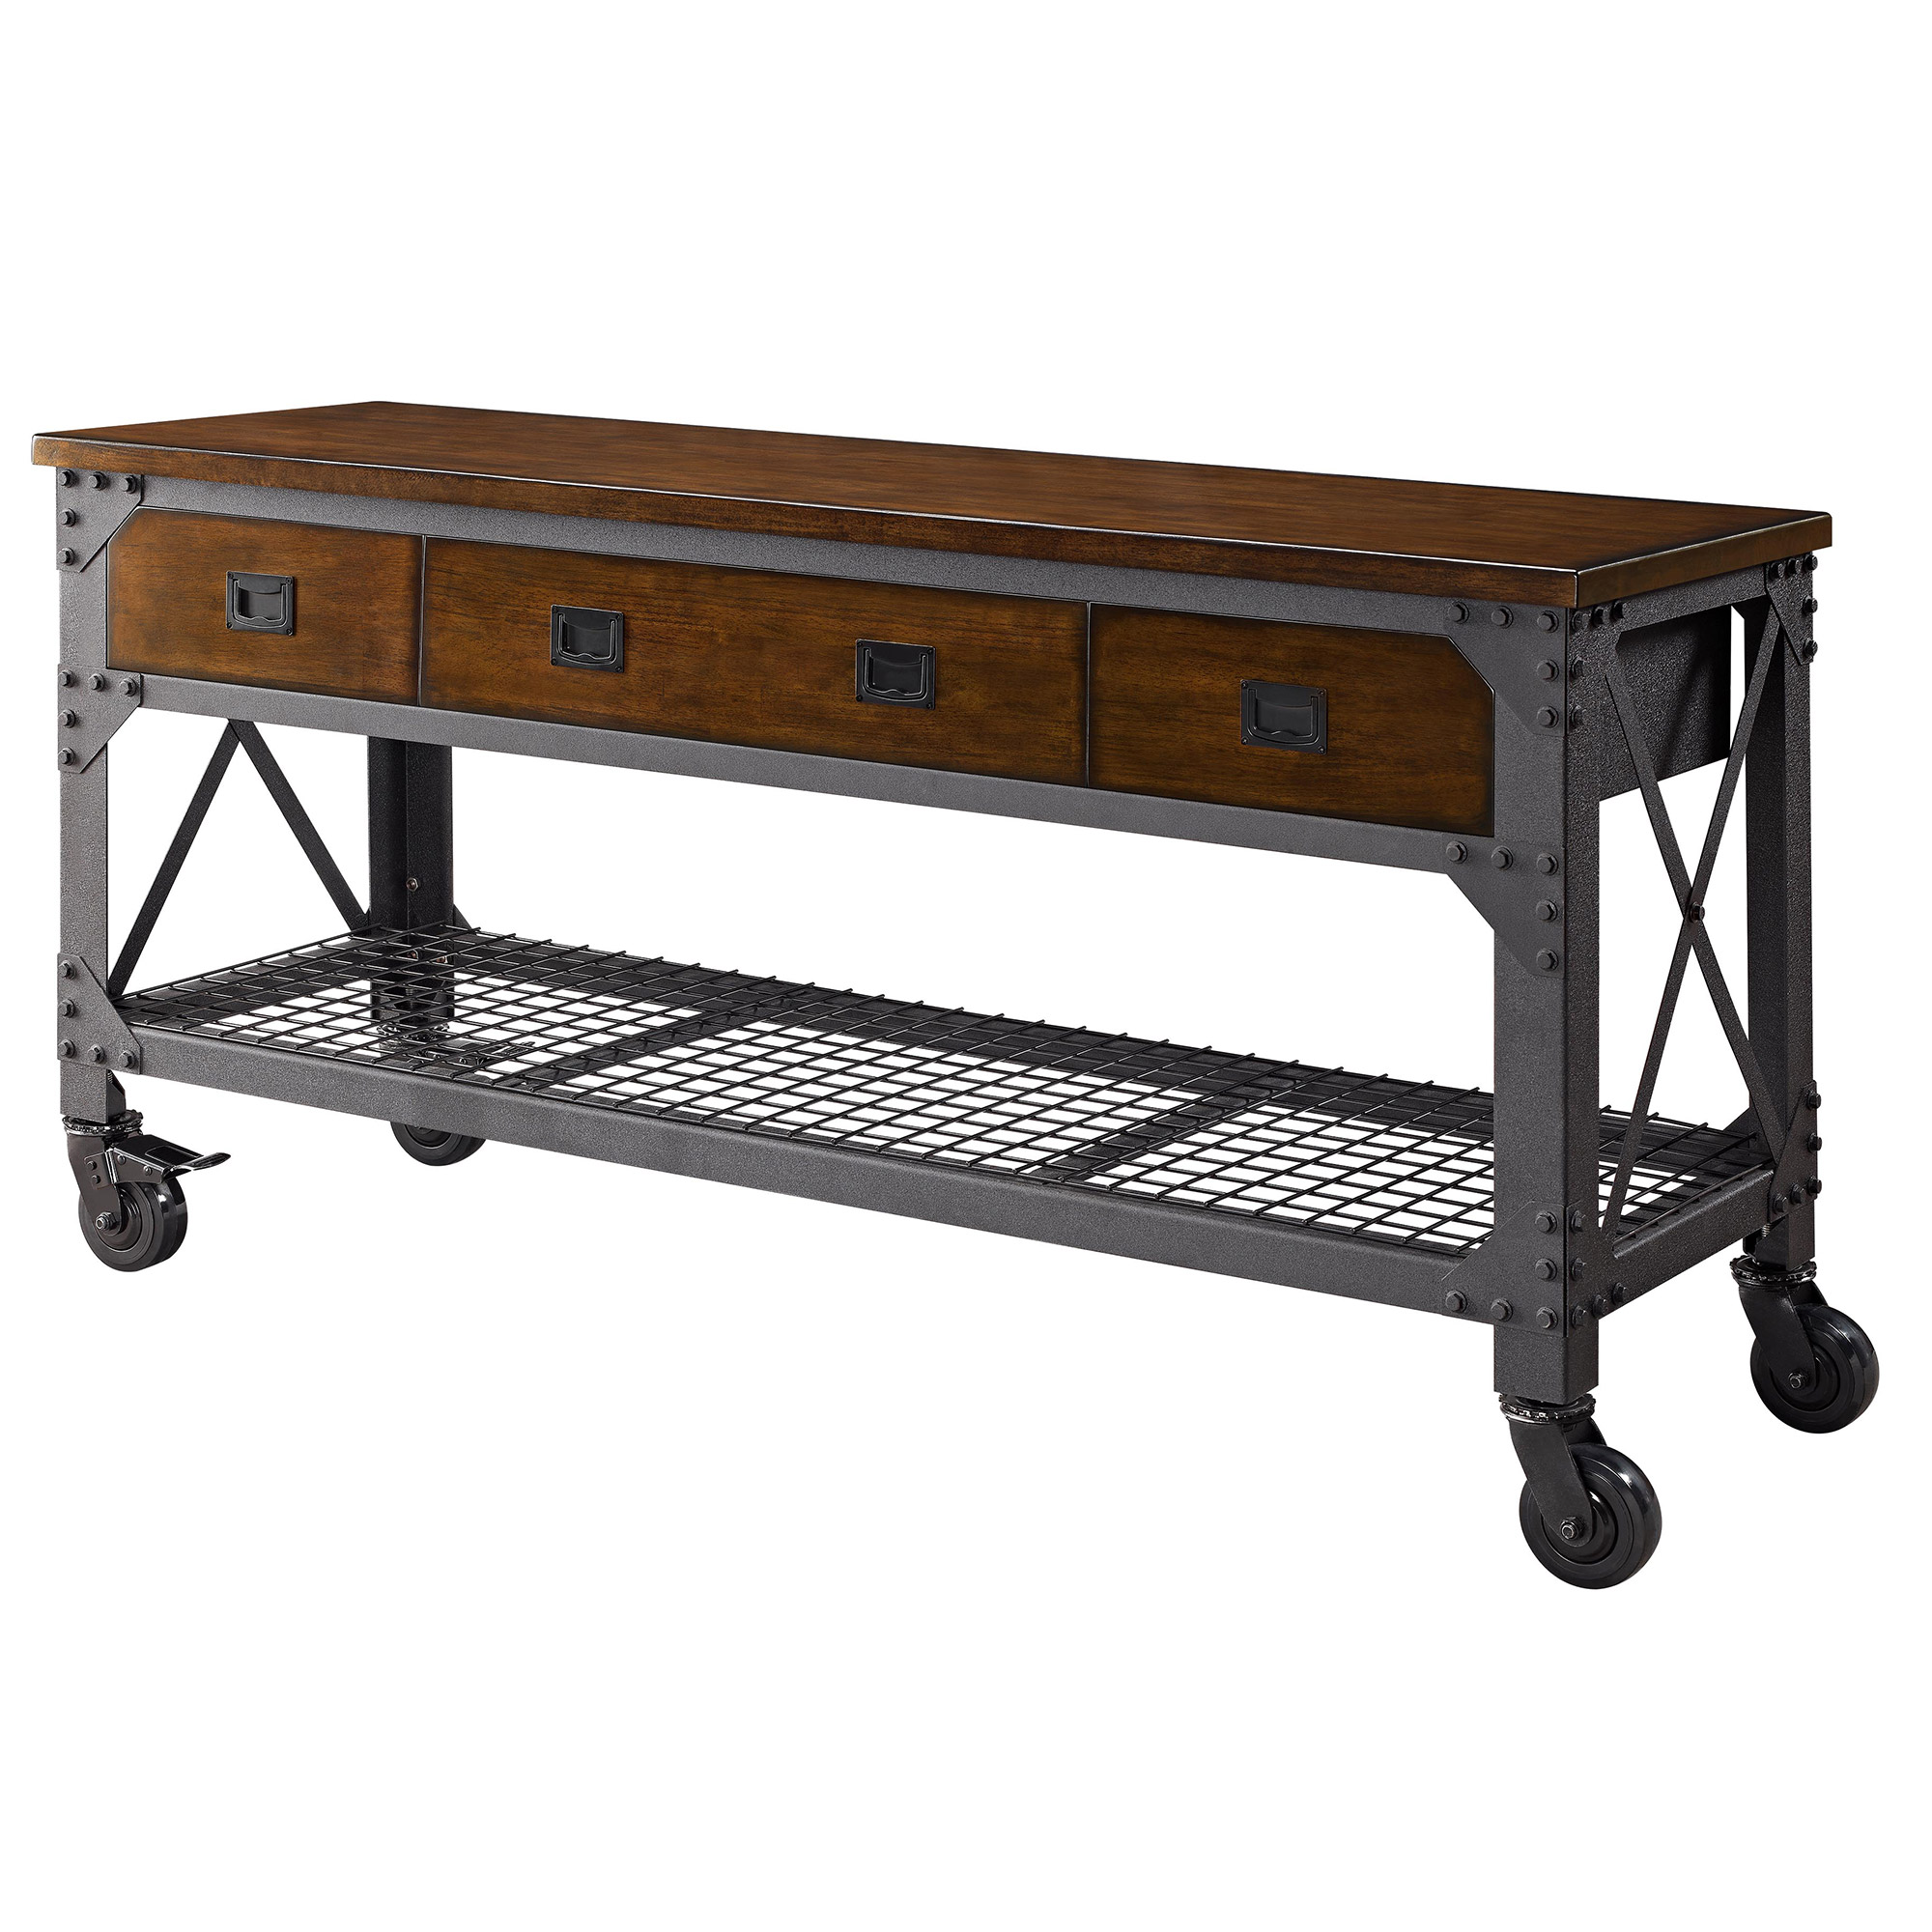 Whalen 72 metal and wood workbench home furniture new ebay for Furniture work table